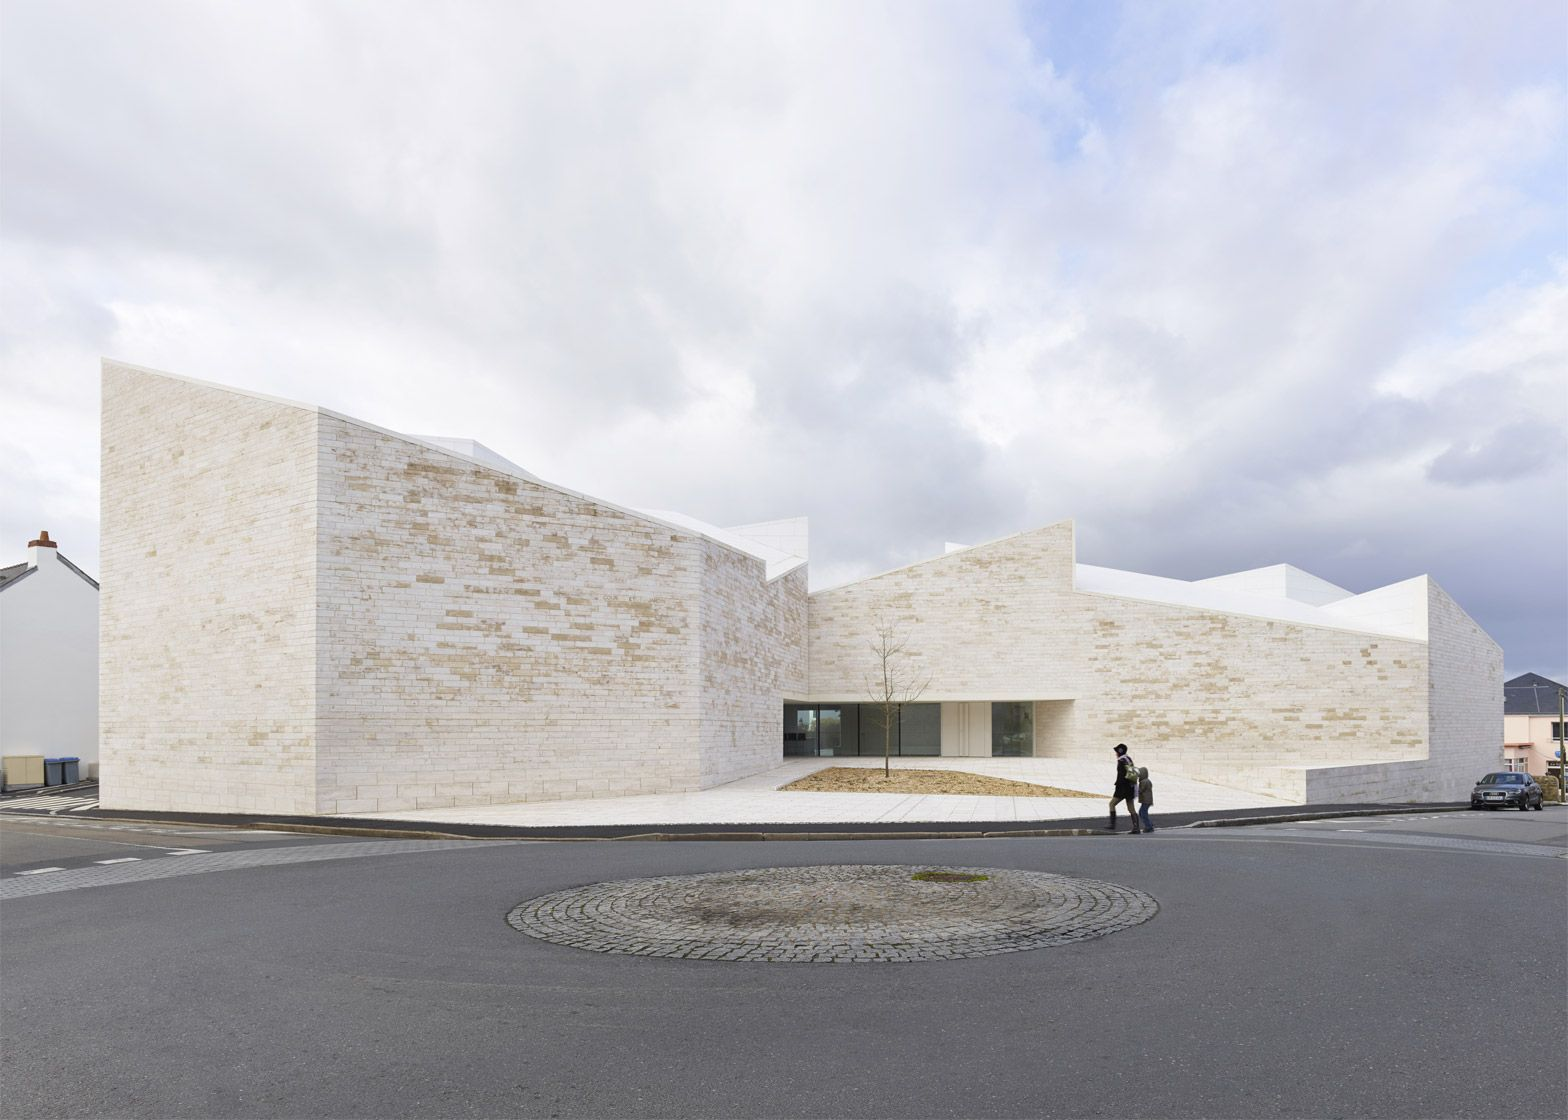 Atelier Fernandez & Serres has completed a cultural centre featuring travertine walls and sloping roof planes that echo the forms of neighbouring houses